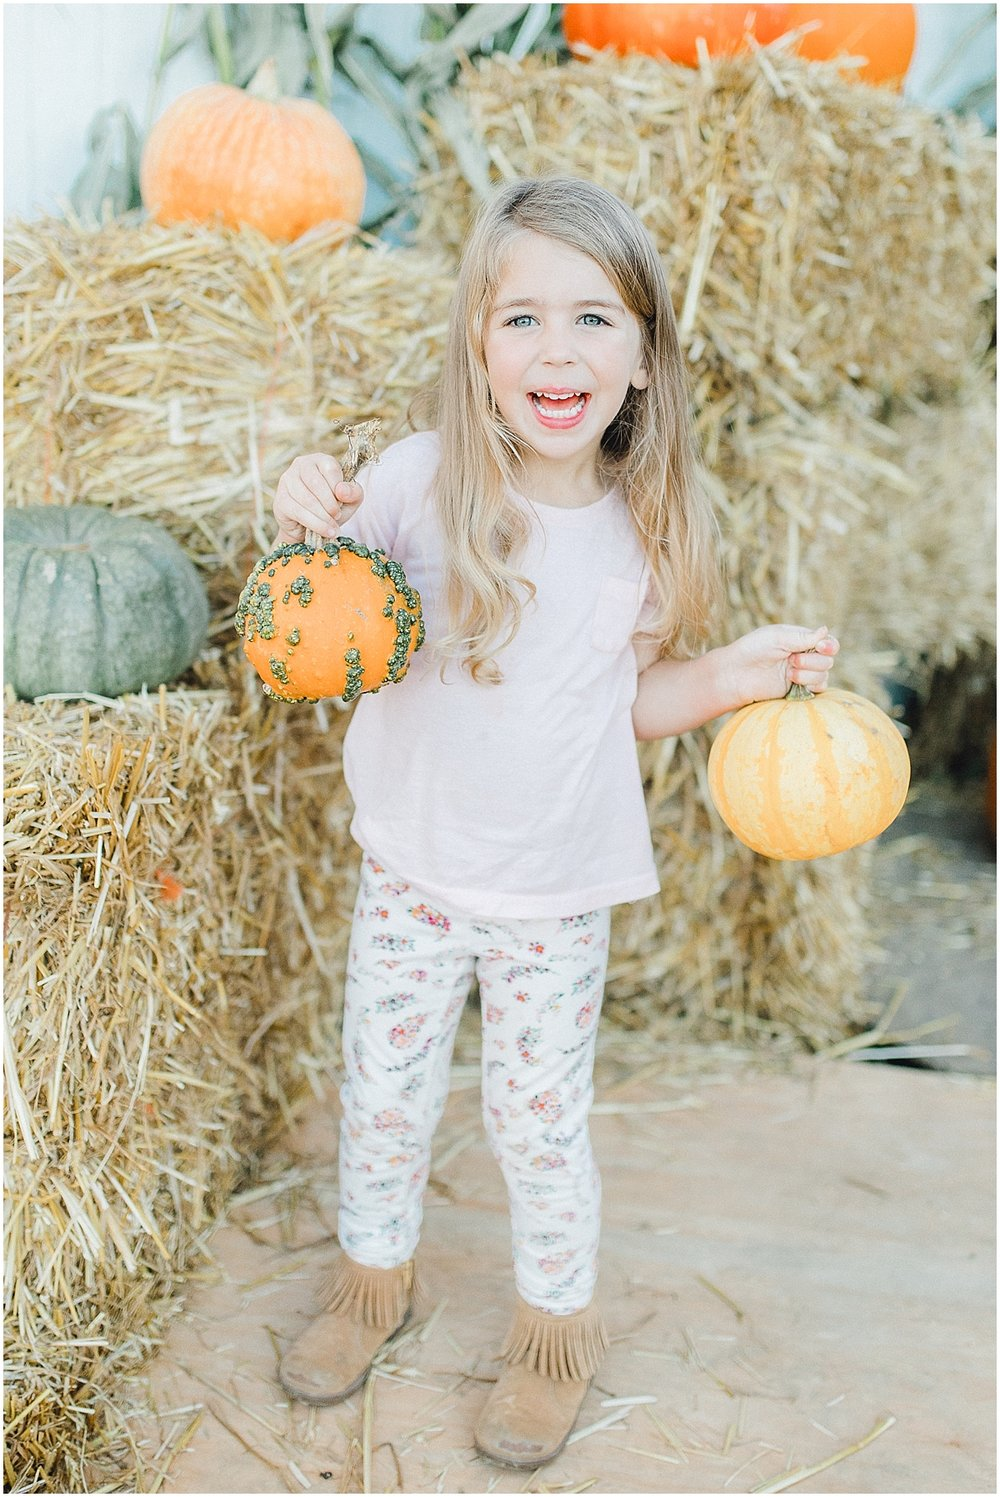 Pumpkin Patch Photo Shoot With Toddler and Mommy | Emma Rose Company Seattle Portland Light and Airy Wedding Photographer | Kindred Presets | Film_0004.jpg